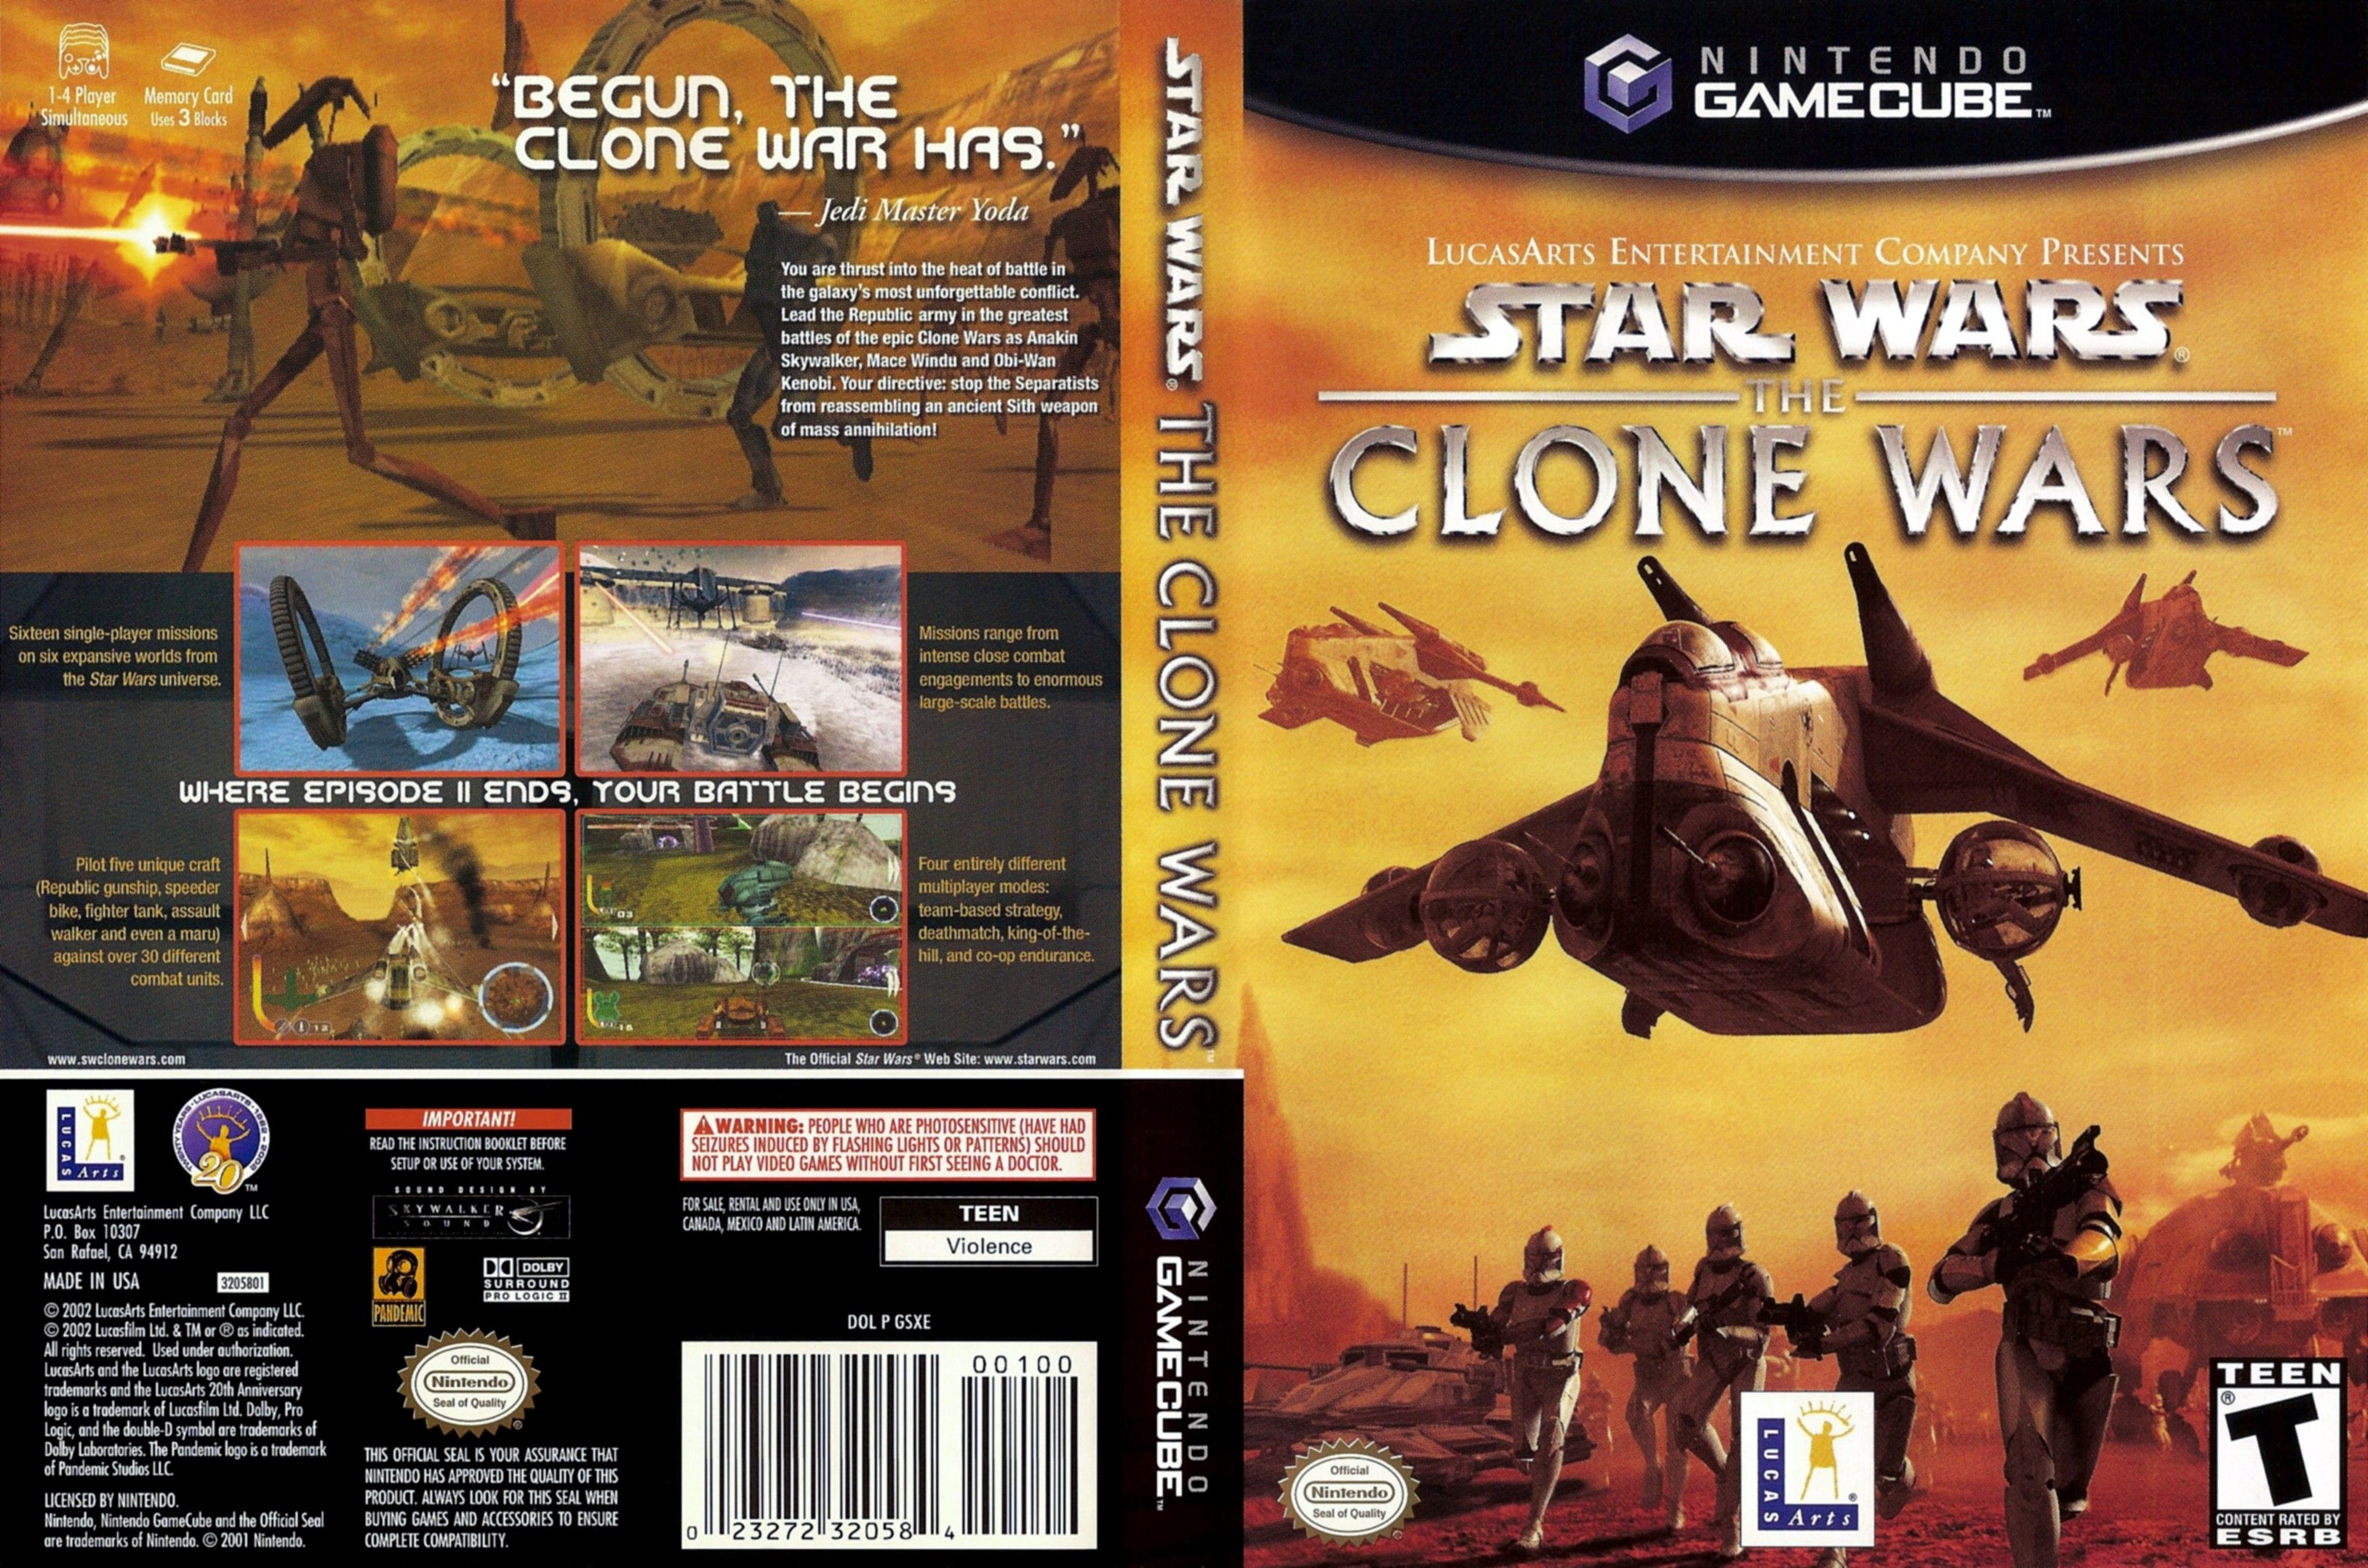 download star wars the clone wars nintendo gamecube emu rom